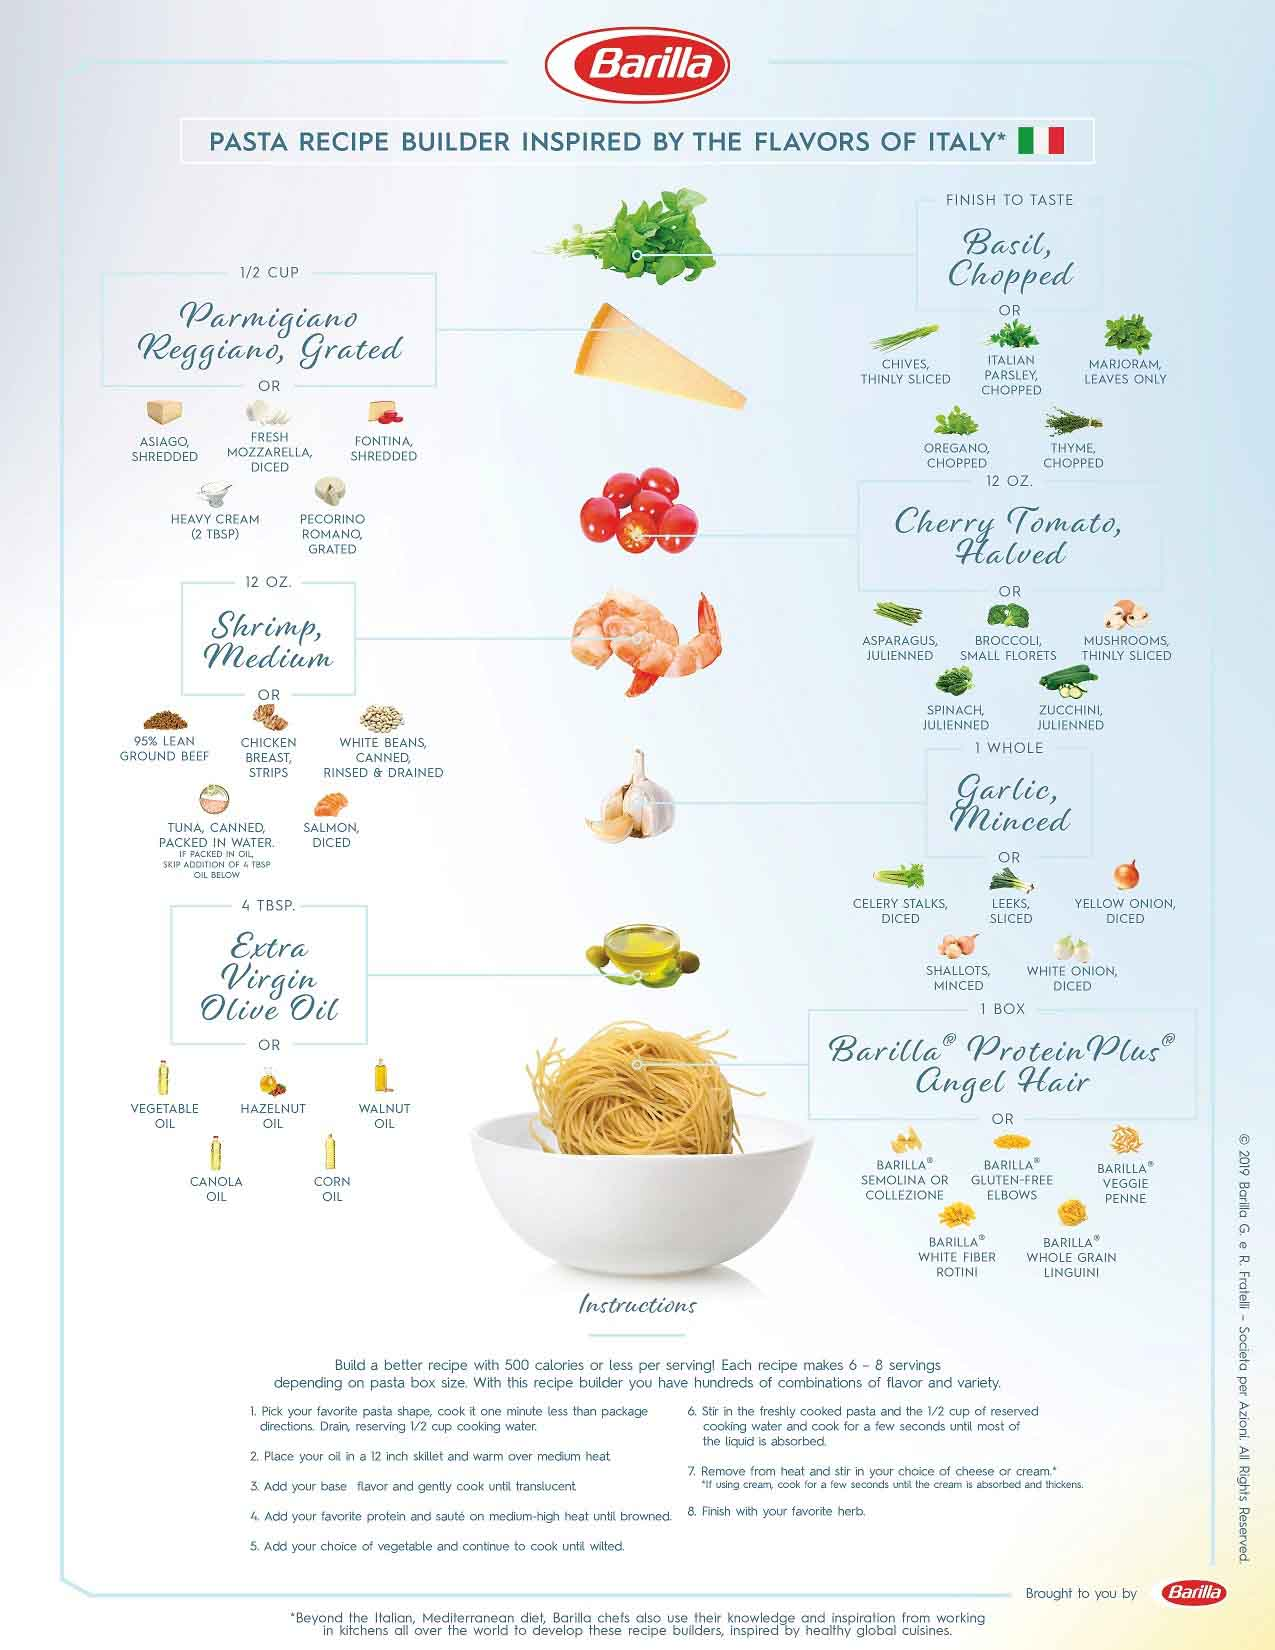 Pasta Recipe Builder inspired by the flavors of Italy